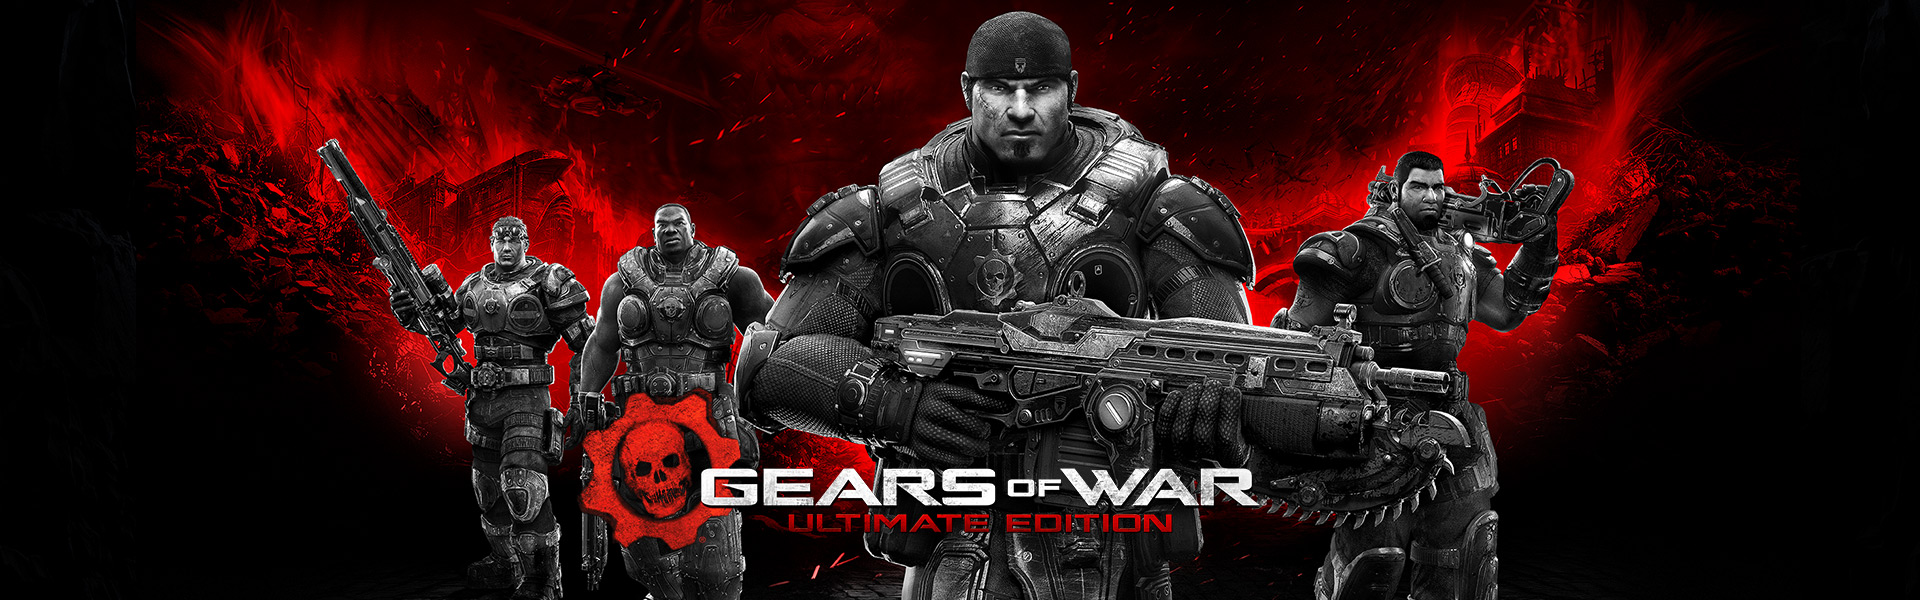 Gears of War Ultimate, Damon Baird, Augustus Cole, Marcus Fenix and Dominic Santiago characters holding weapons